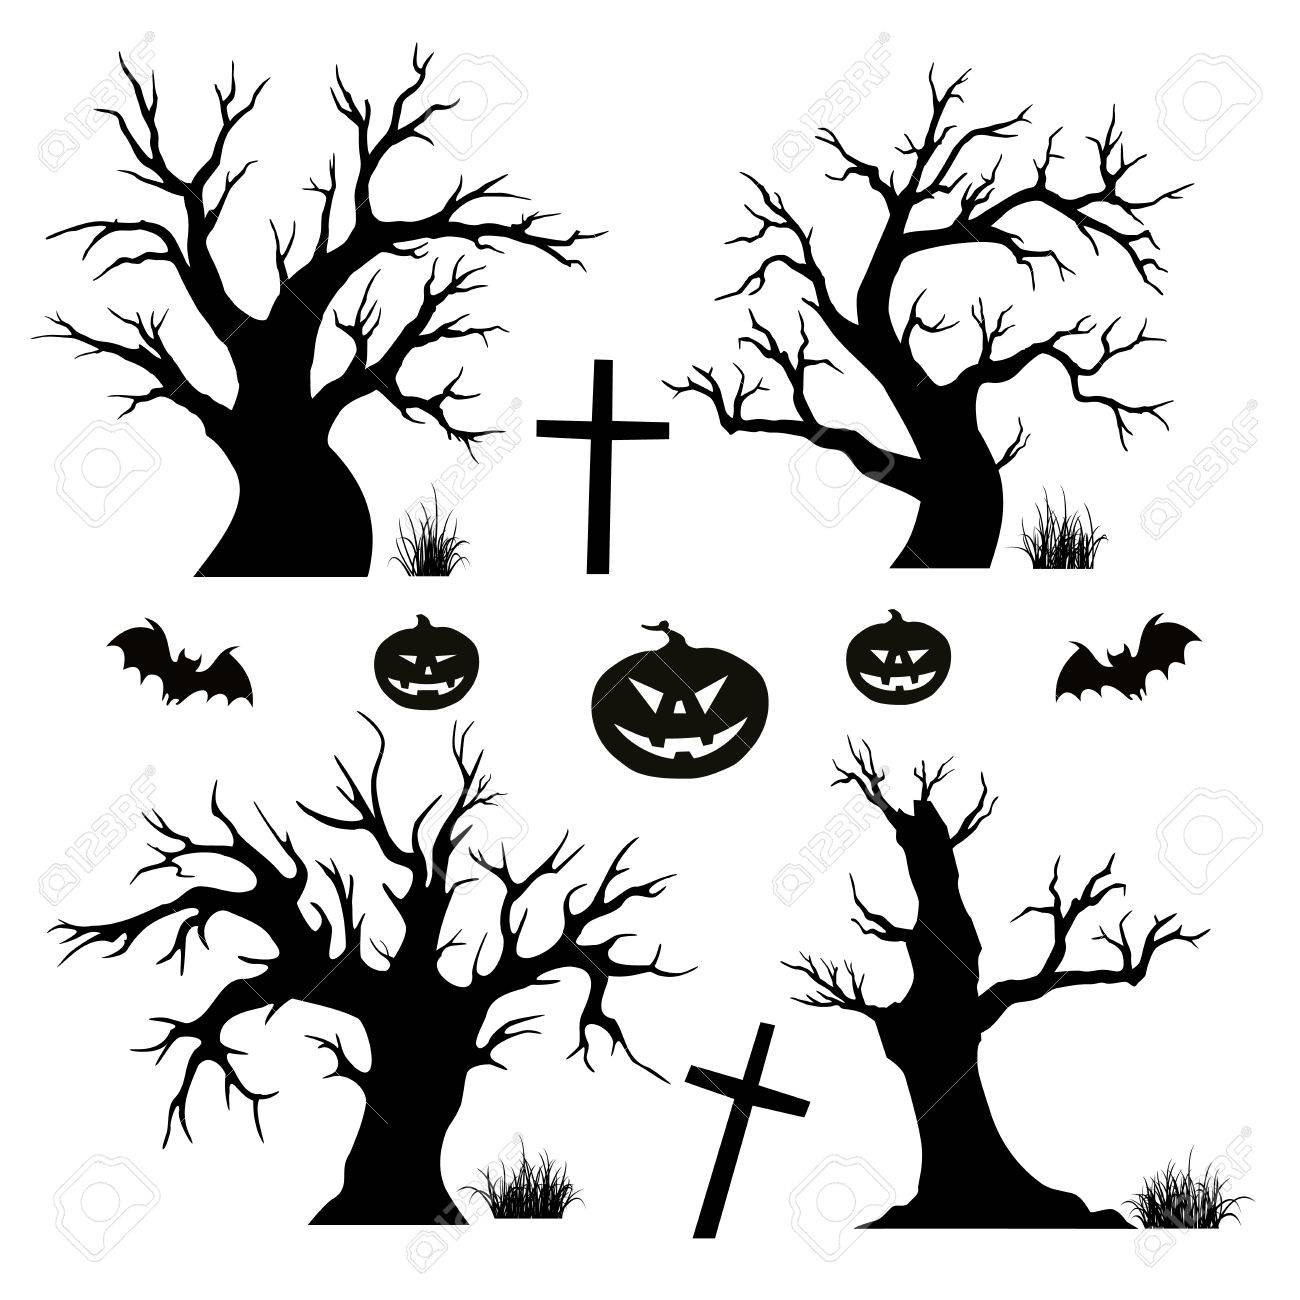 Halloween , Halloween Tree transparent background PNG clipart in 2020    Leaf illustration, Watercolor flowers paintings, Halloween trees